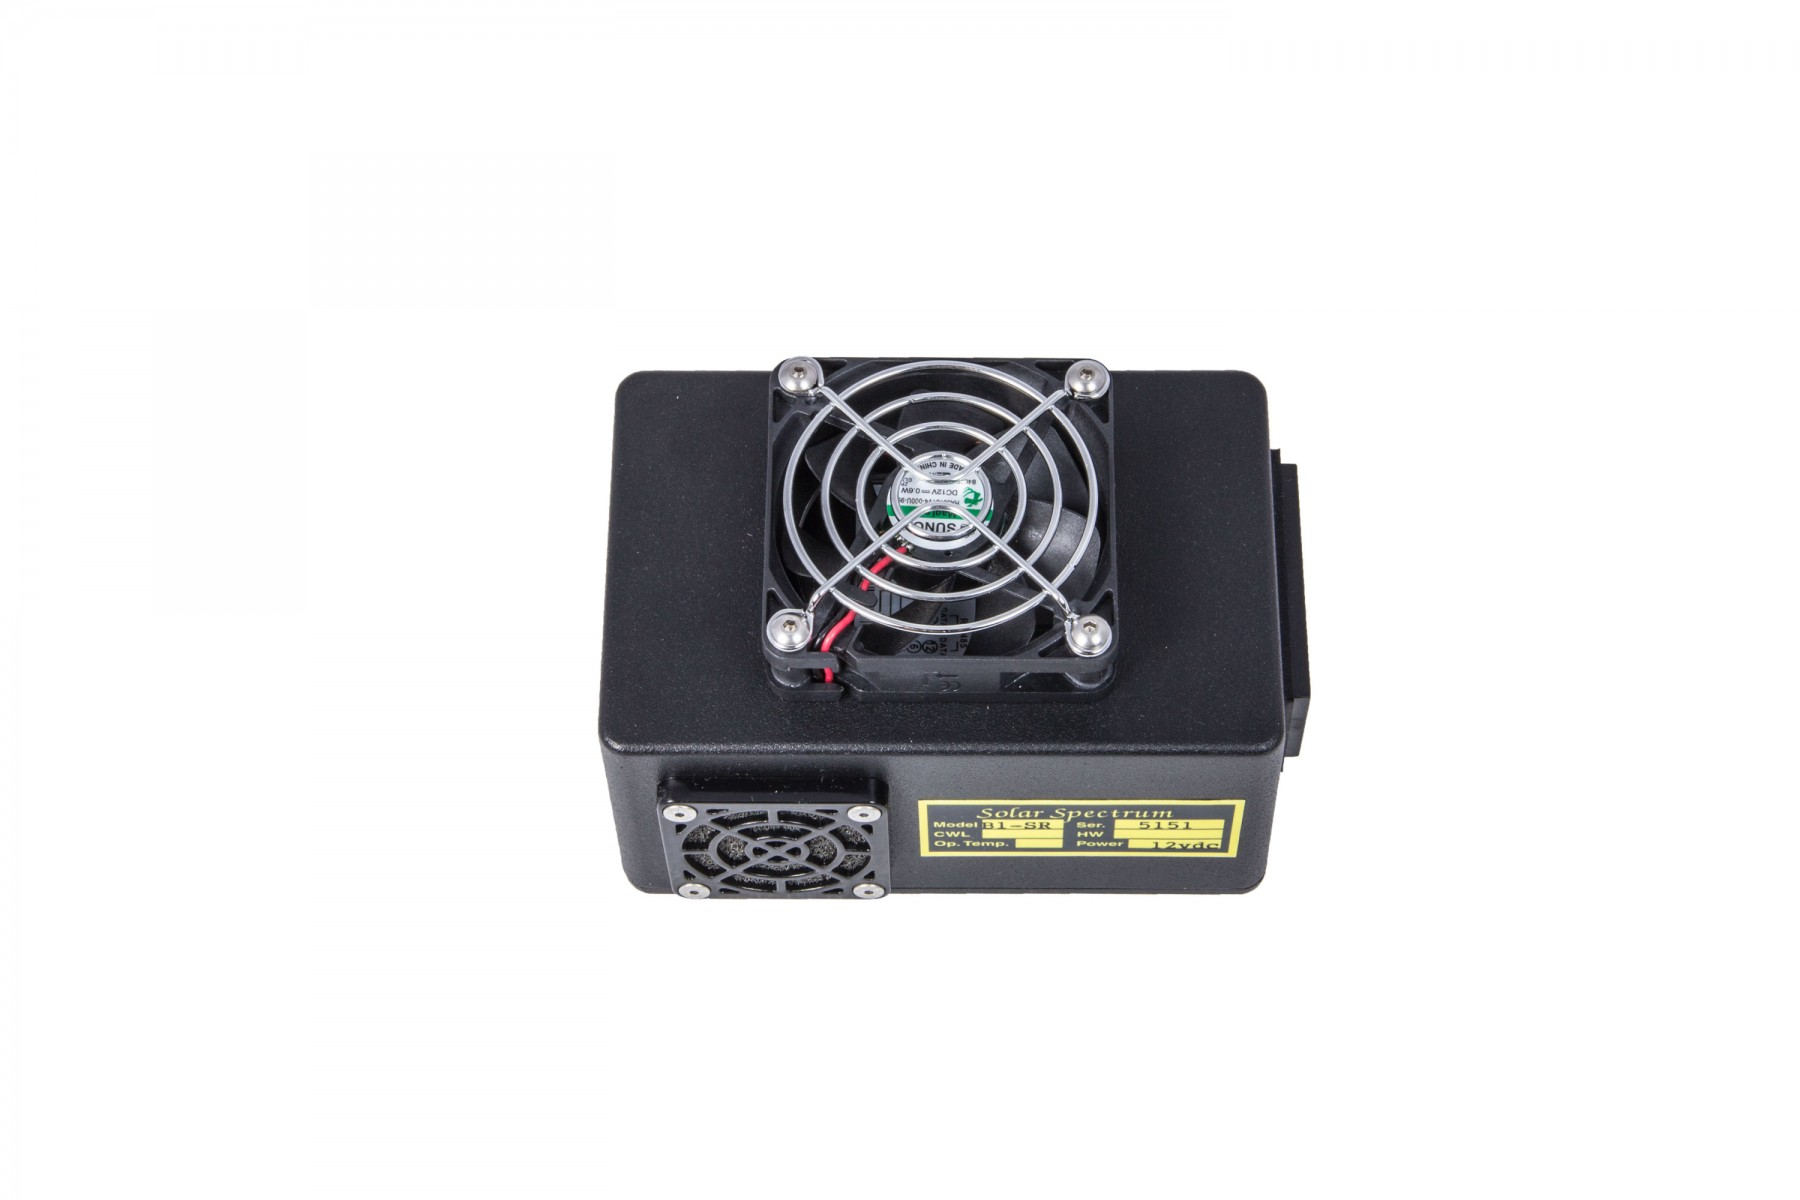 Example of a SolarSpectrum cooling fan (included for all models)